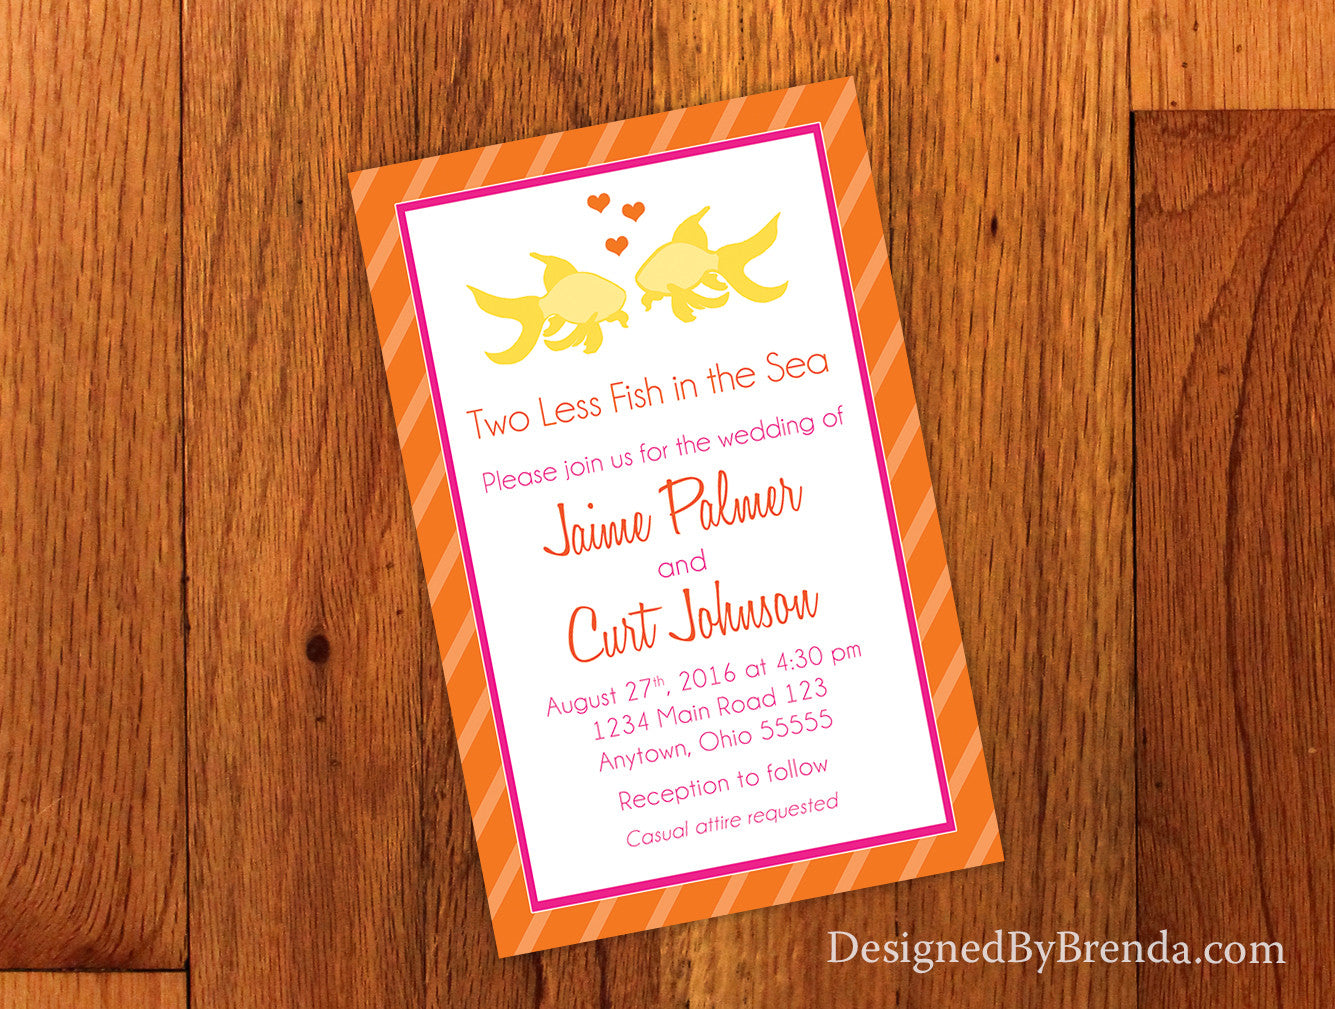 Two Less Fish in the Sea Wedding Invitation - Pink Orange Yellow ...